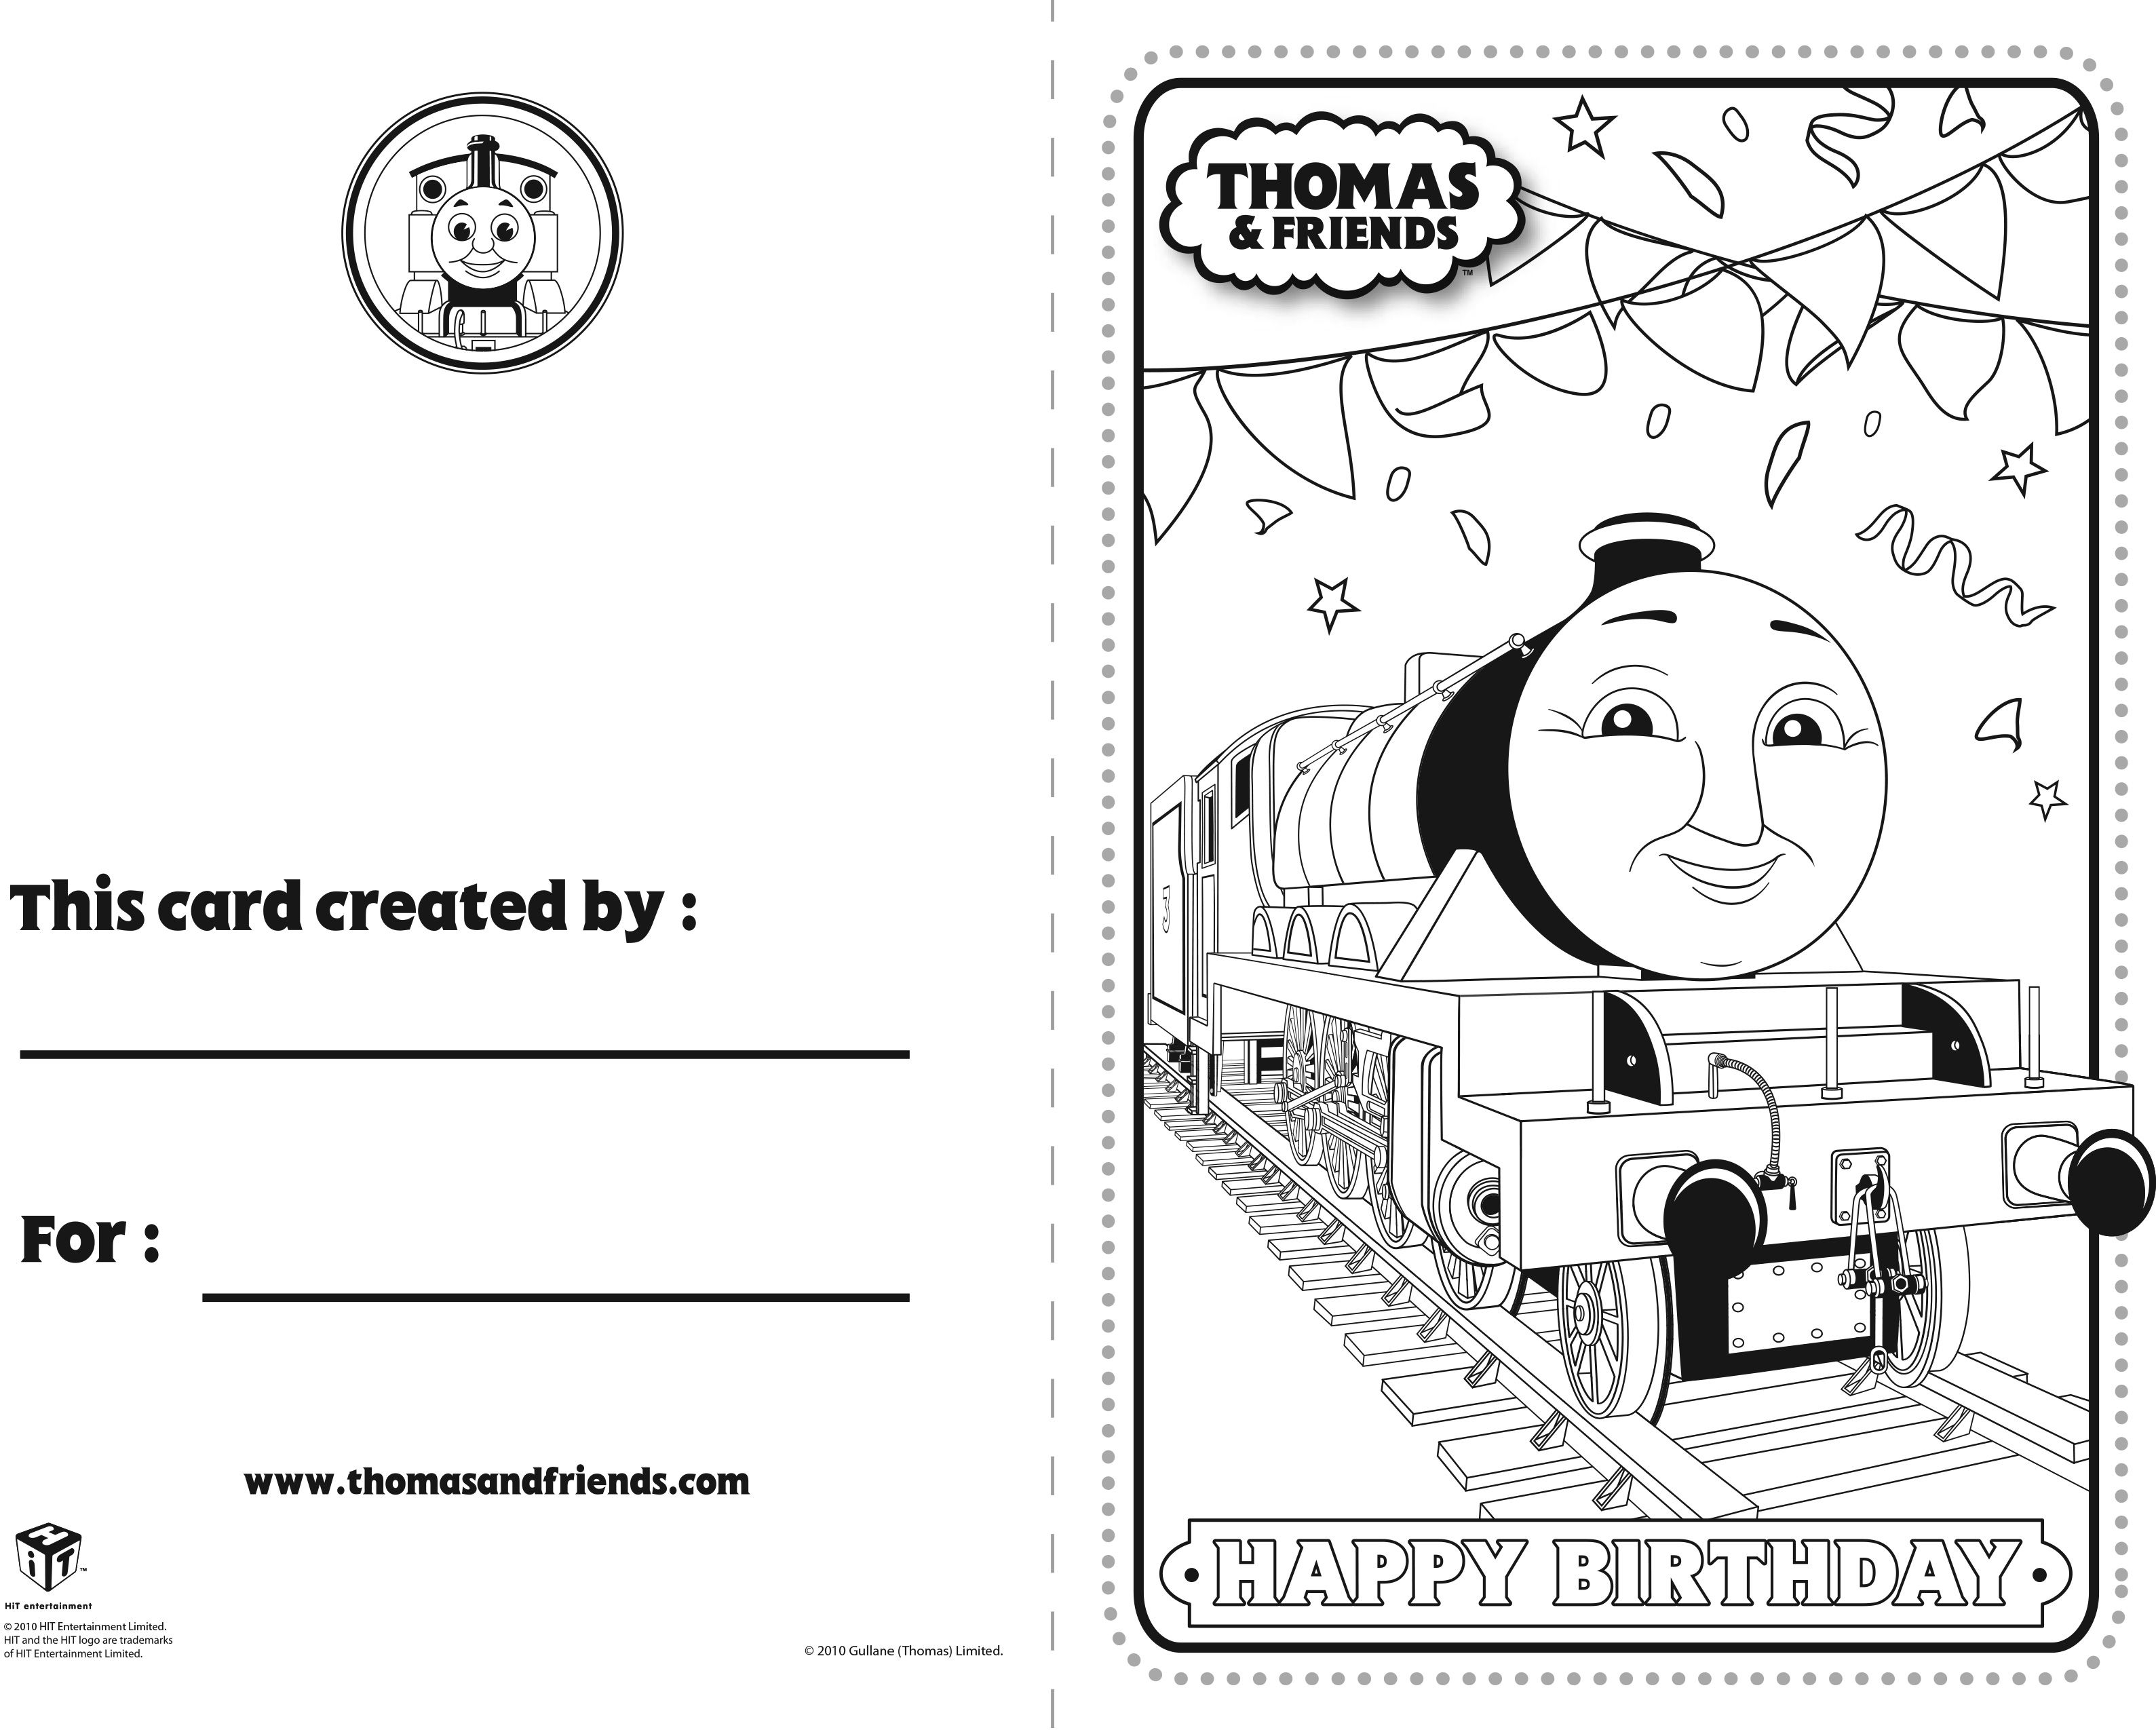 Thomas And Friends Birthday Card Henry Thomasandfriends